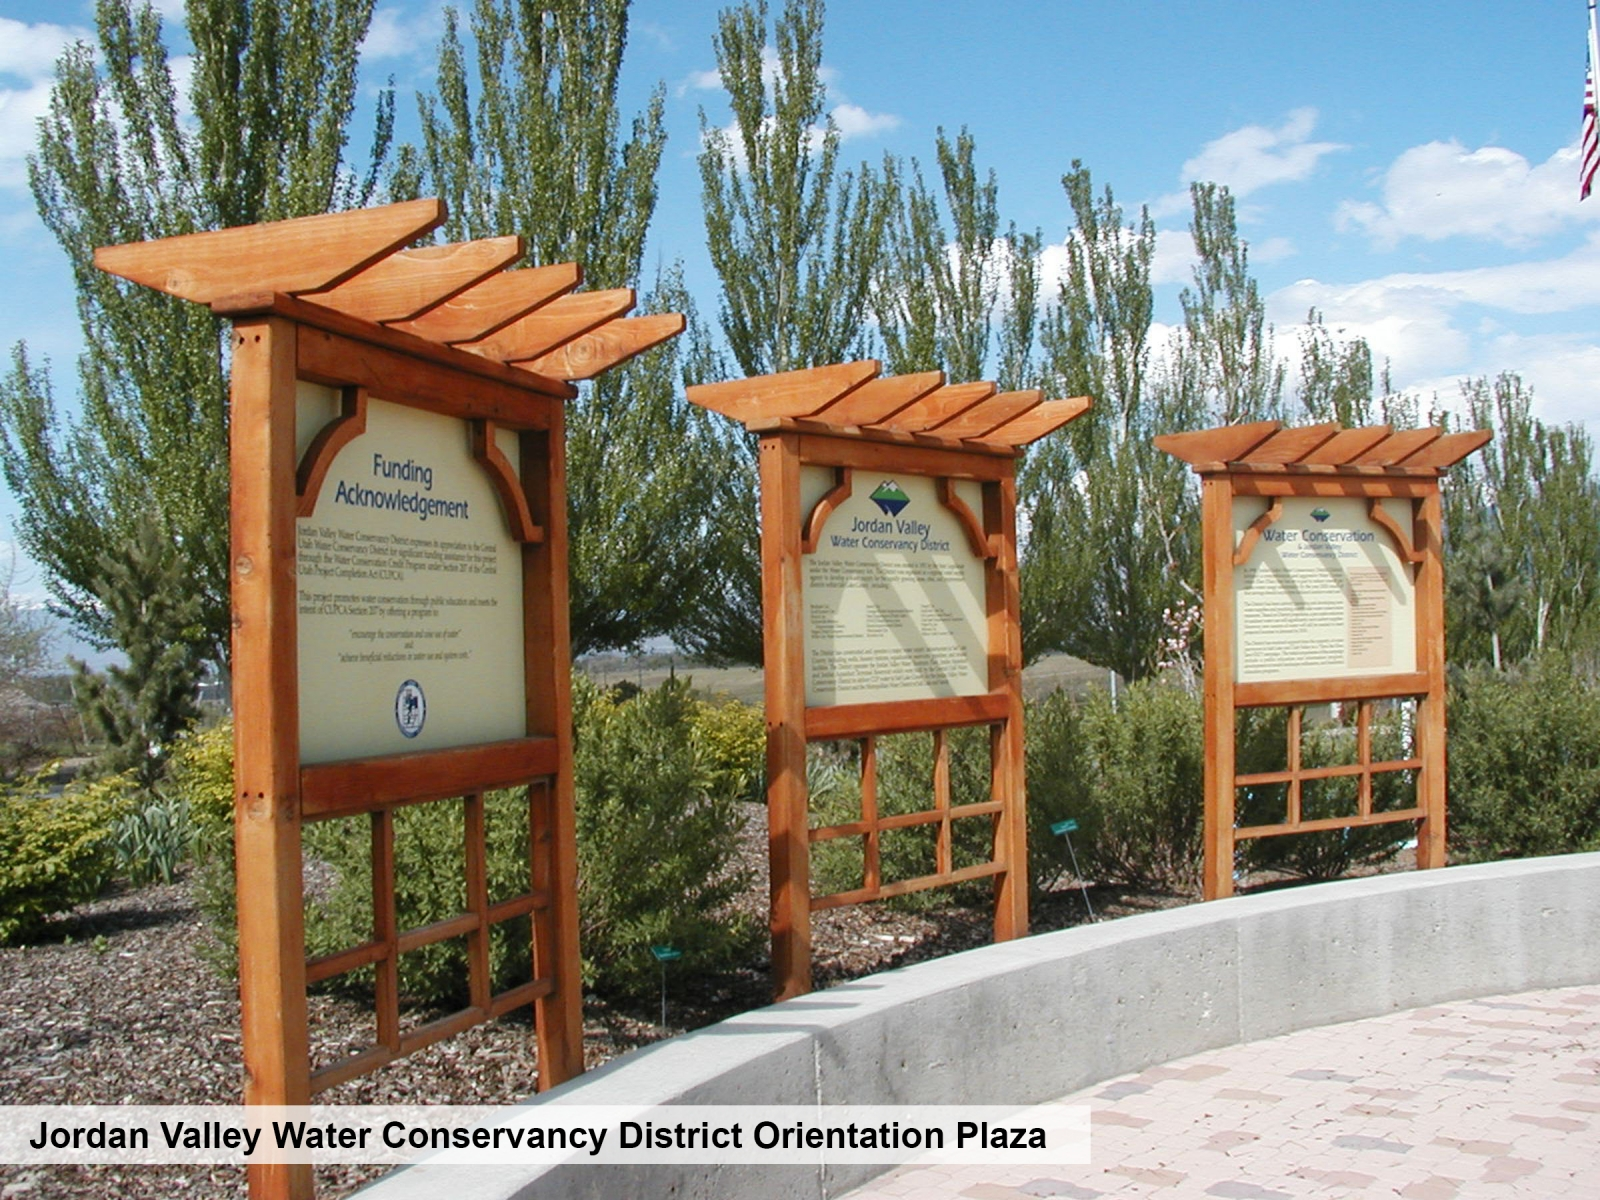 Wayfinding & Interpretive Signs